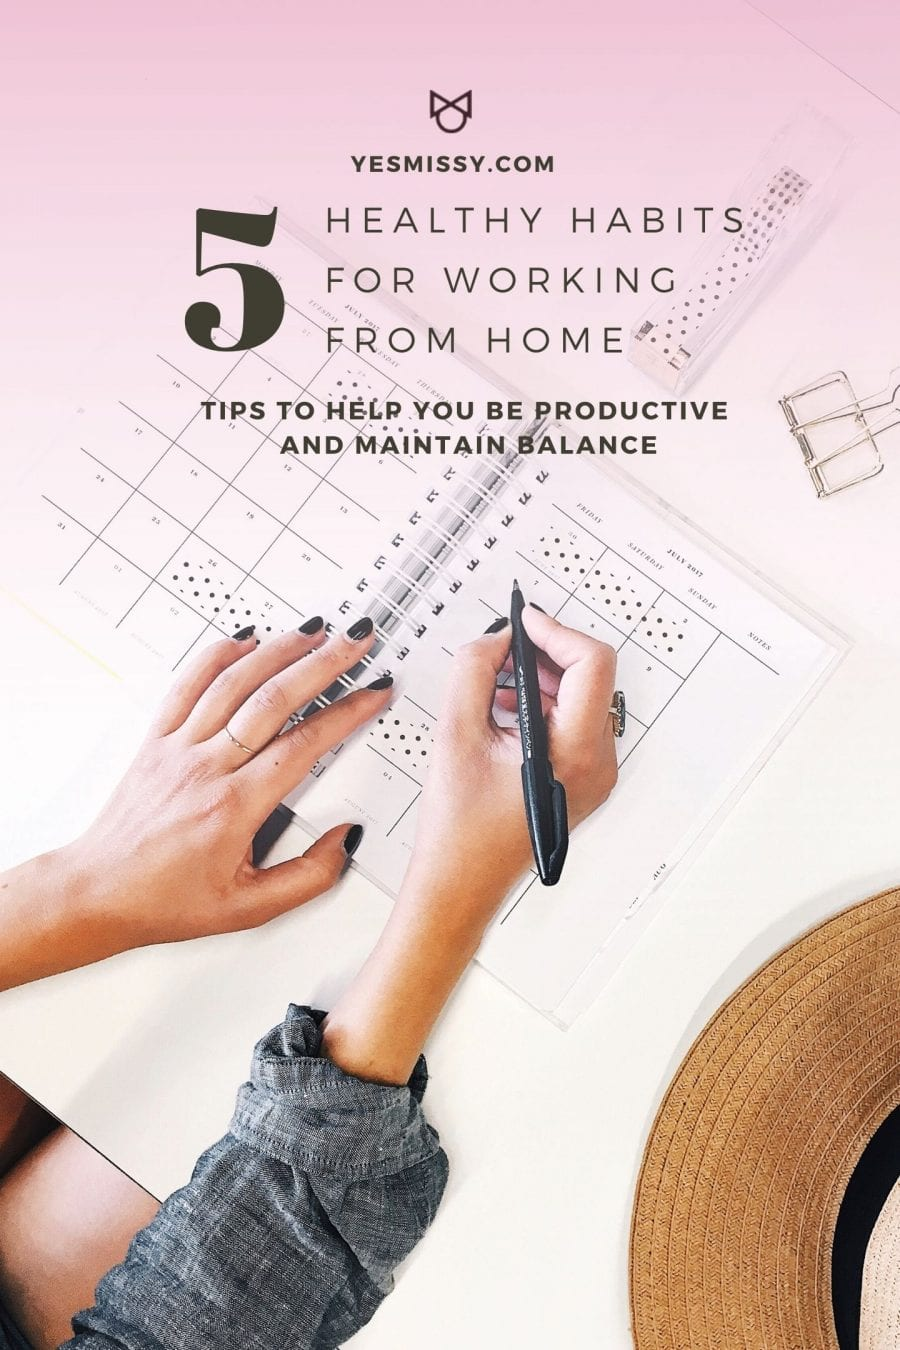 Simple tips to help you work from home and be more productive